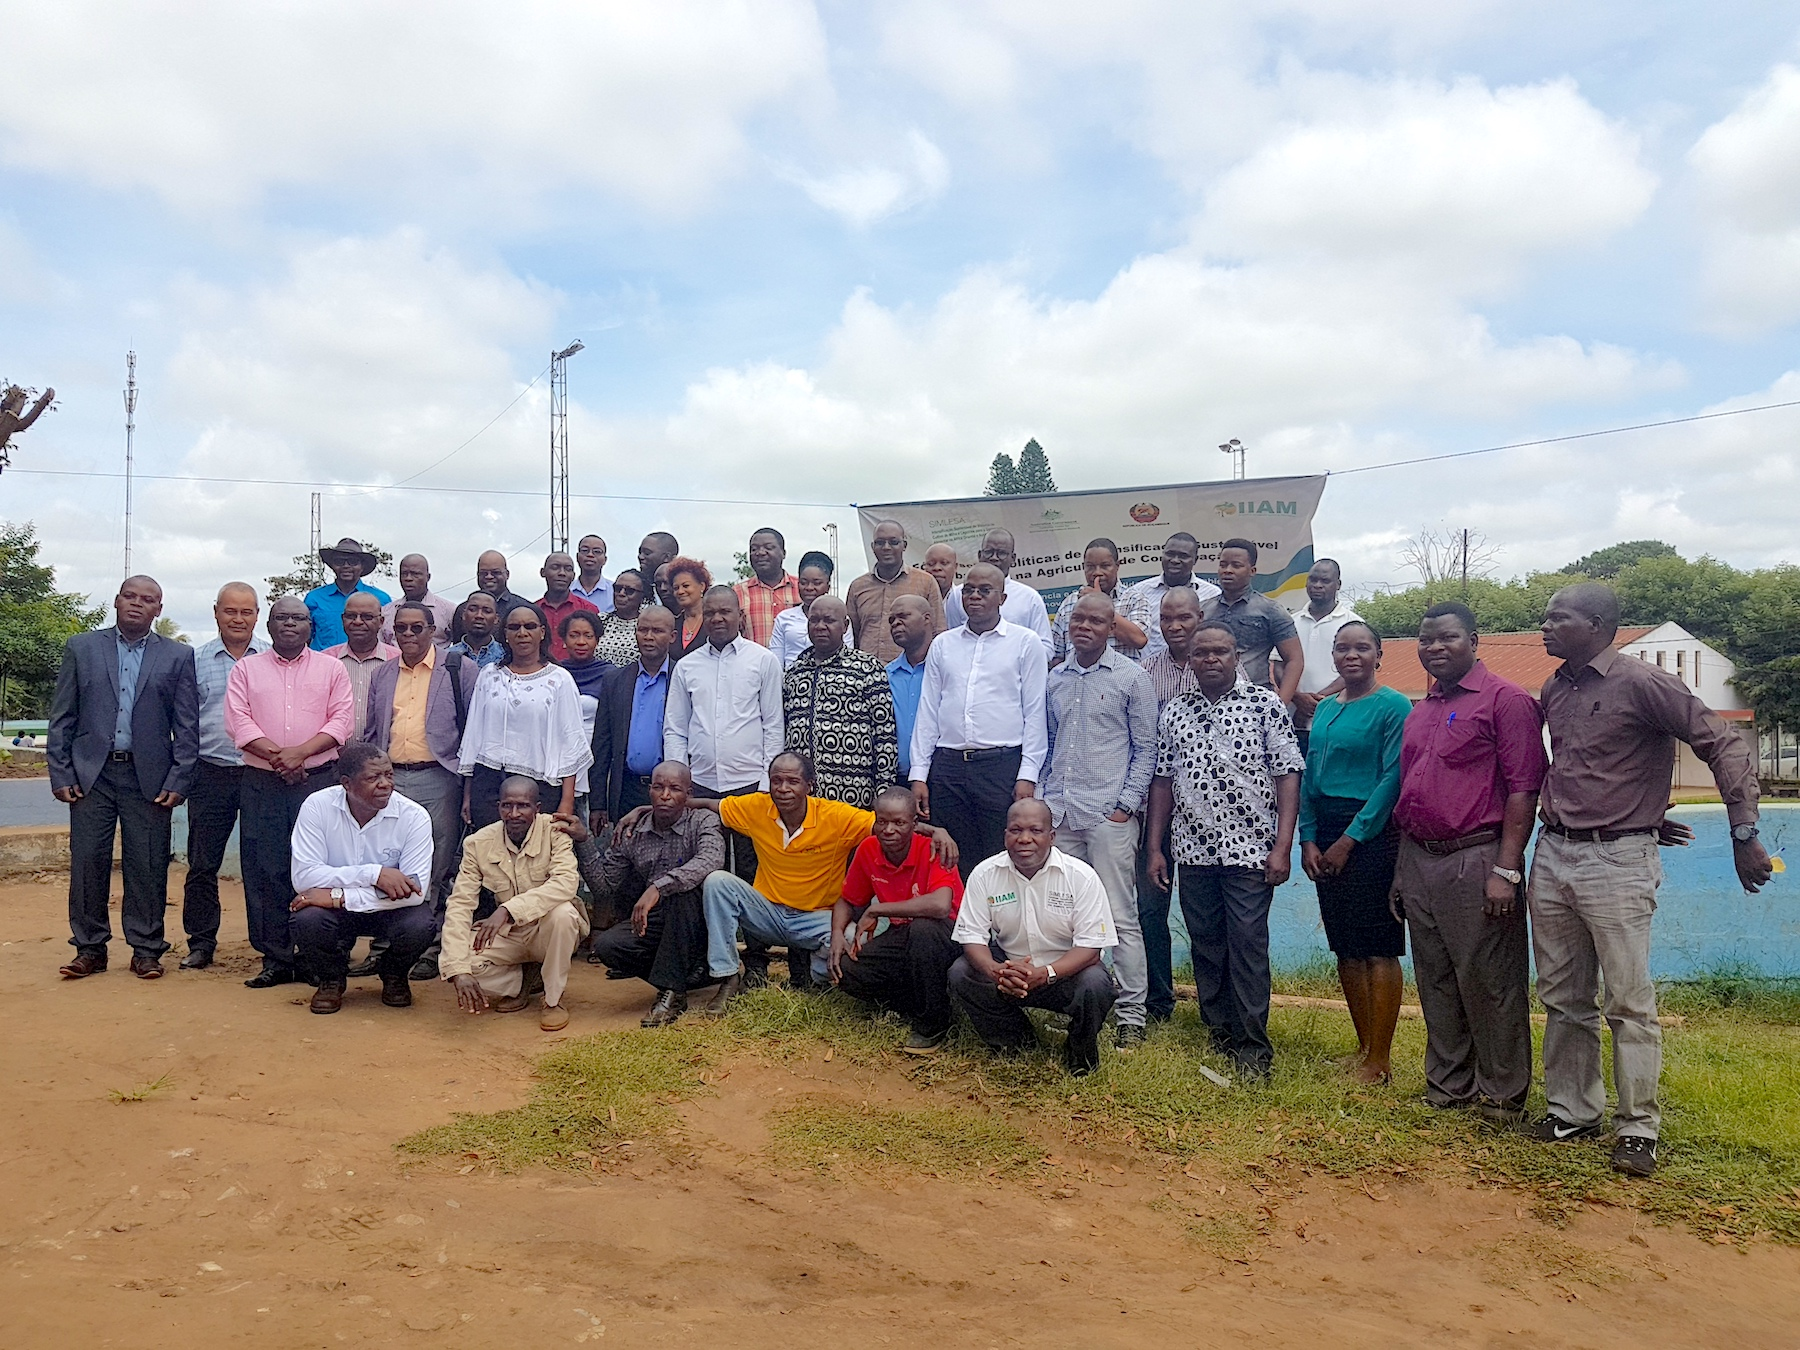 Participants of the SIMLESA policy forum in Chimoio, Manica province, Mozambique, pose for a group photo.